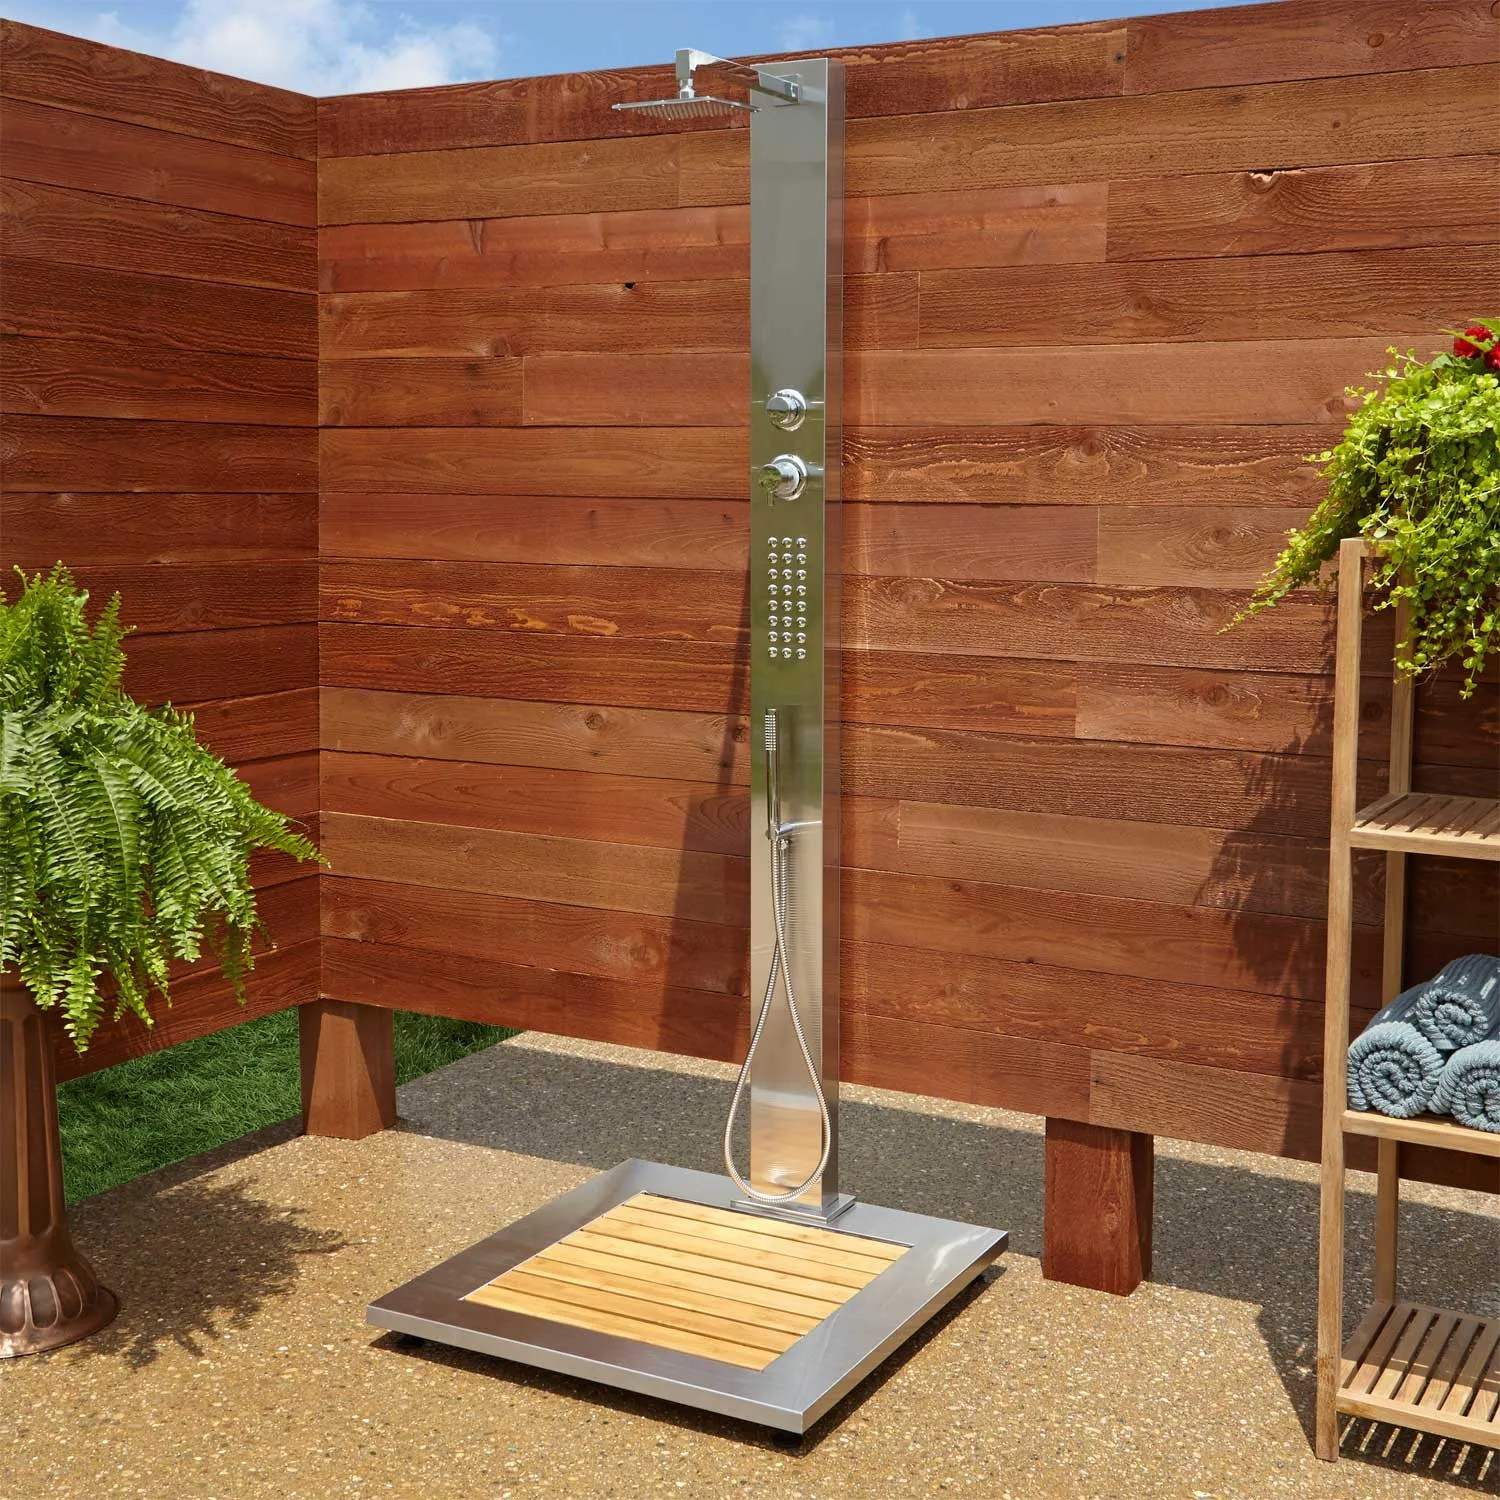 Outdoor Shower Base Ideas Abner Outdoor Stainless Steel Shower Panel With Bamboo